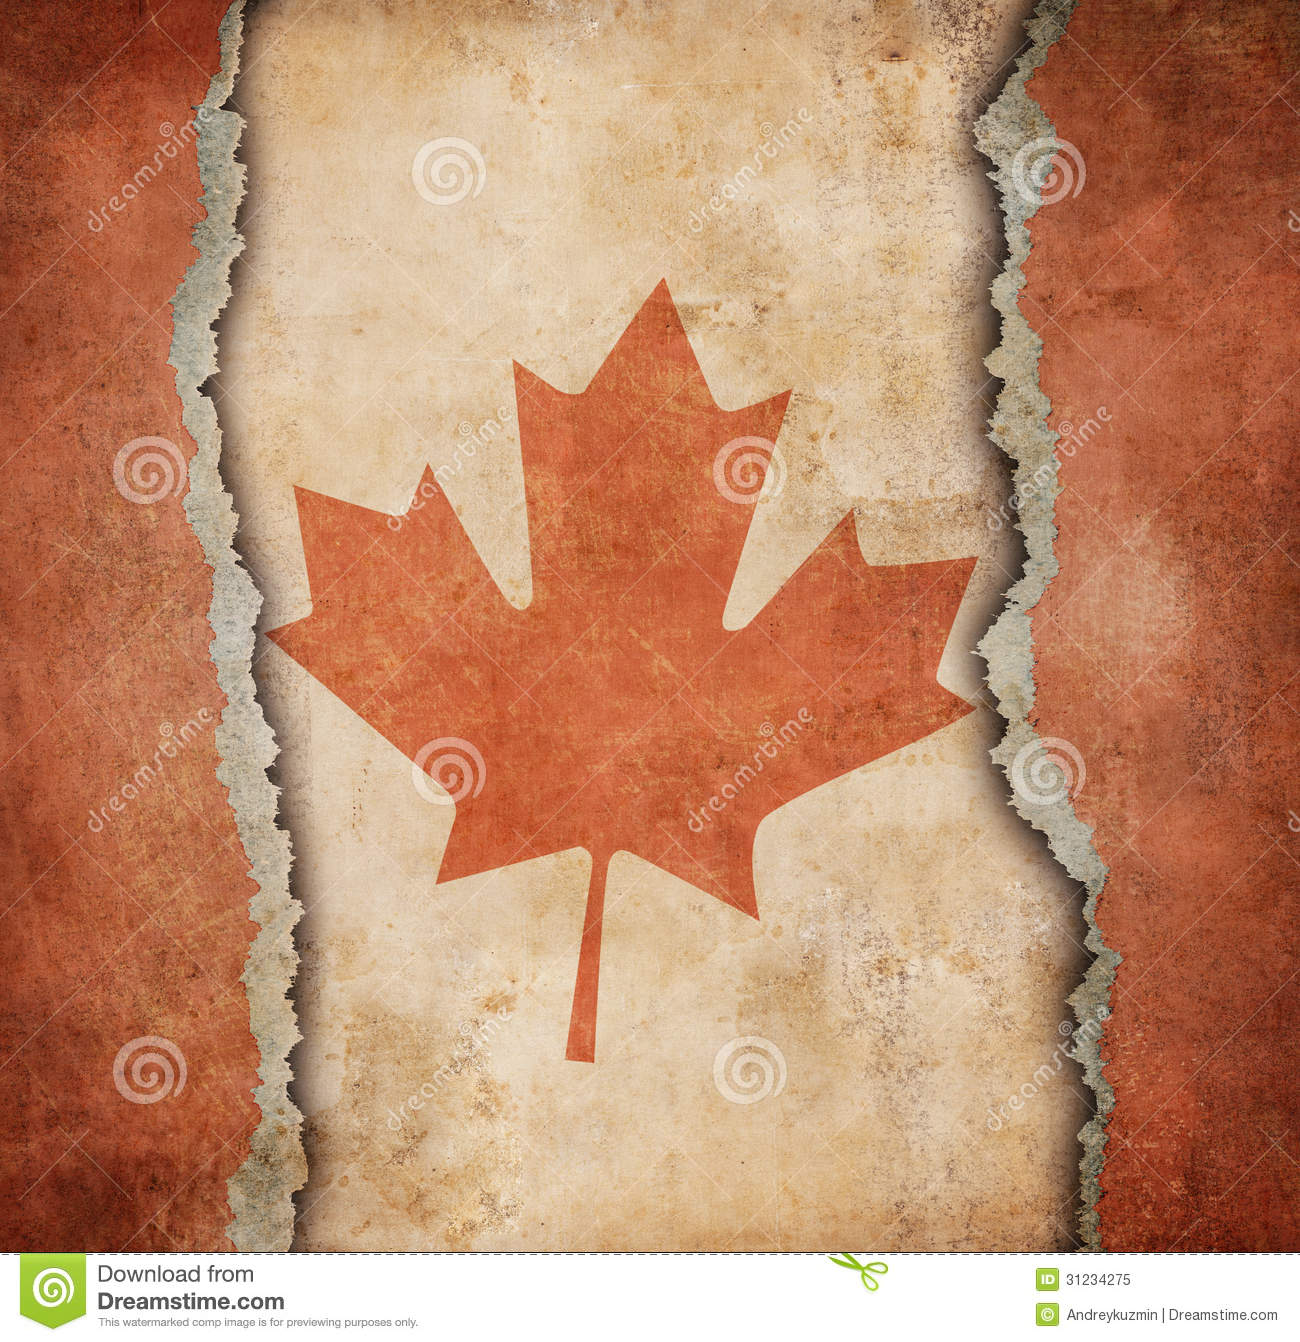 the maple leaf flag of canada on torn paper royalty free stock